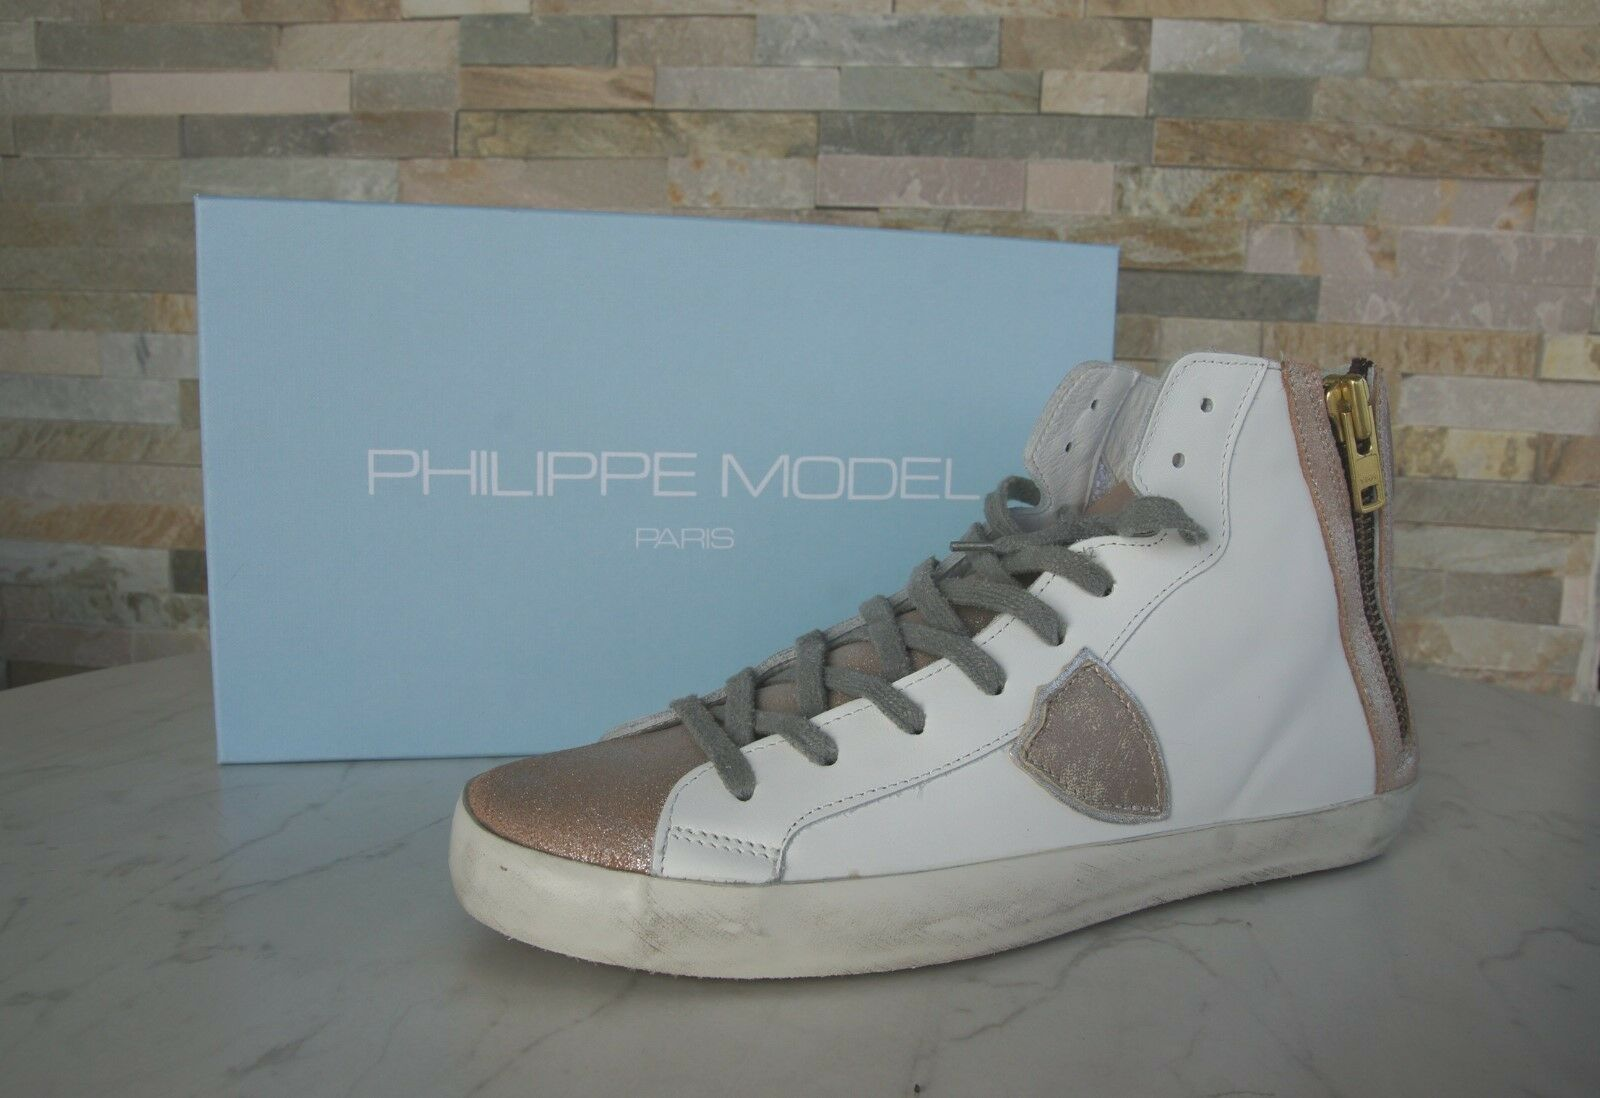 Philippe Model Paris taglia 41 HIGH TOP SNEAKERS BIKE ALTA SCARPE NUOVO UVP